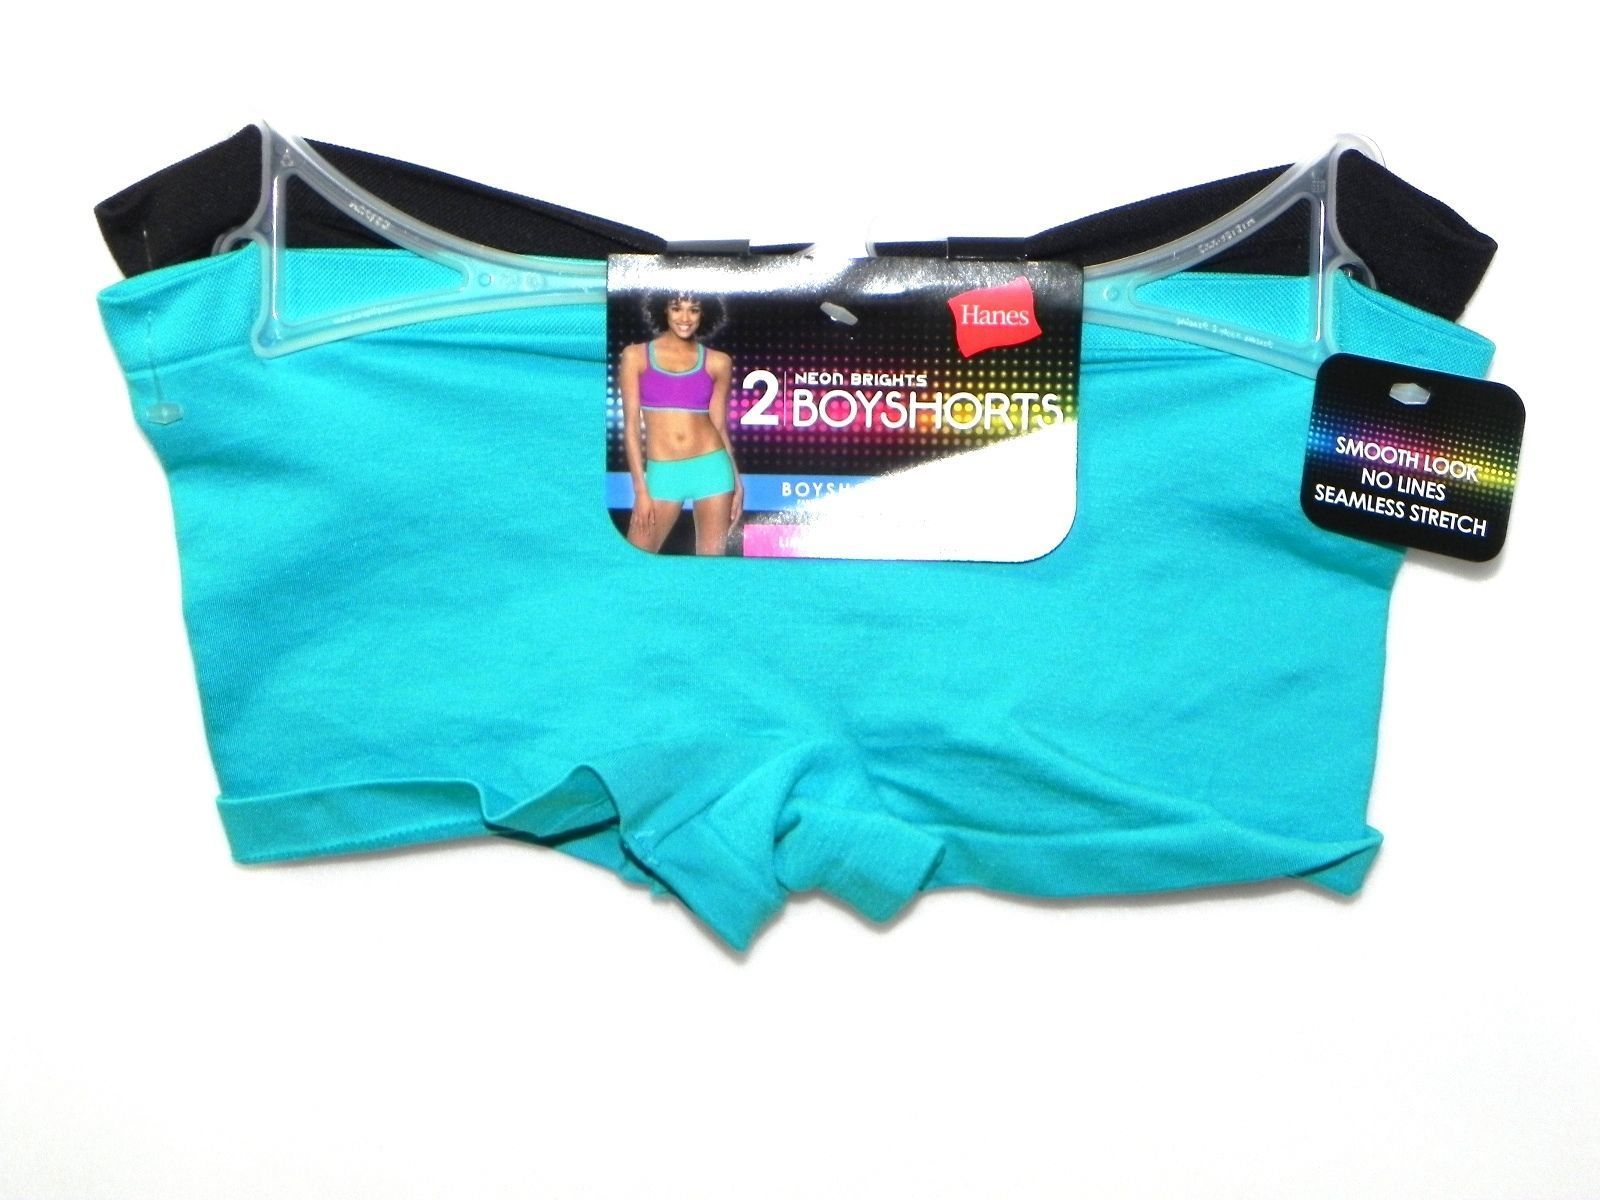 cd534ef60bd 57. 57. Hanes Women s 2pc Neon Brights Boyshorts Panties Limited Time Only Size  S 5  Hanes Women s ...